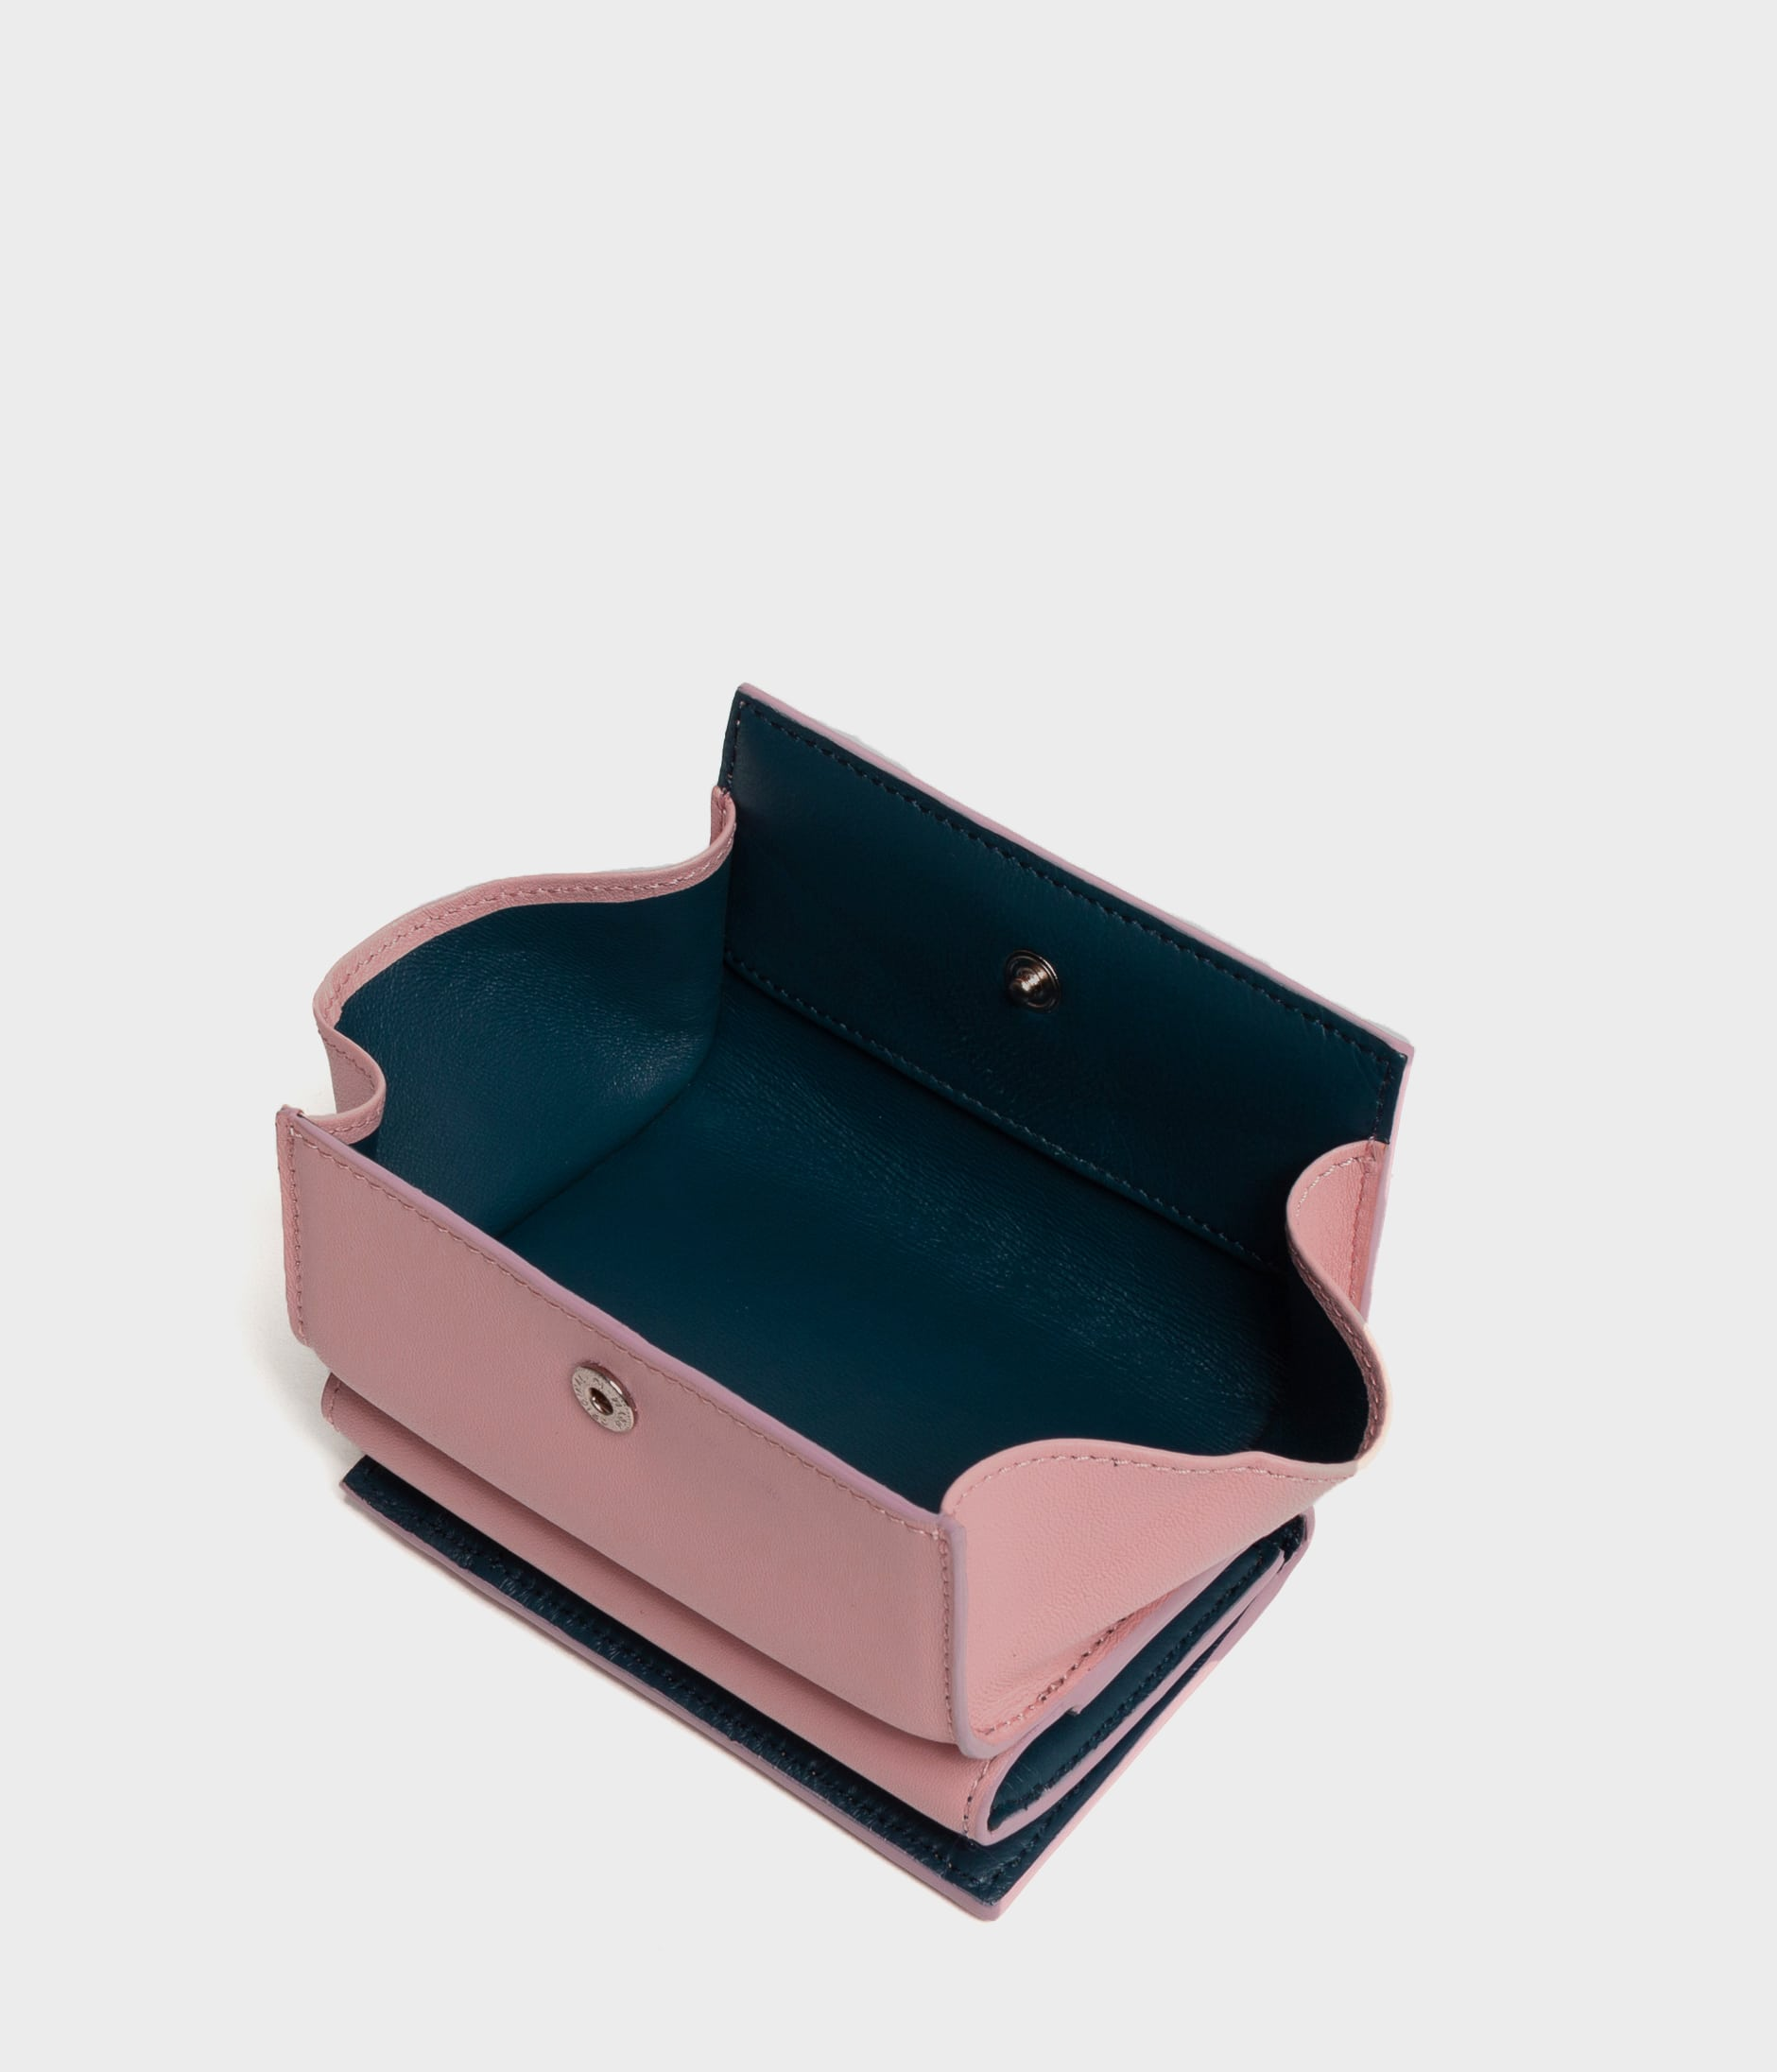 FOLD WALLET WITH STUDS 詳細画像 BLUSH 3